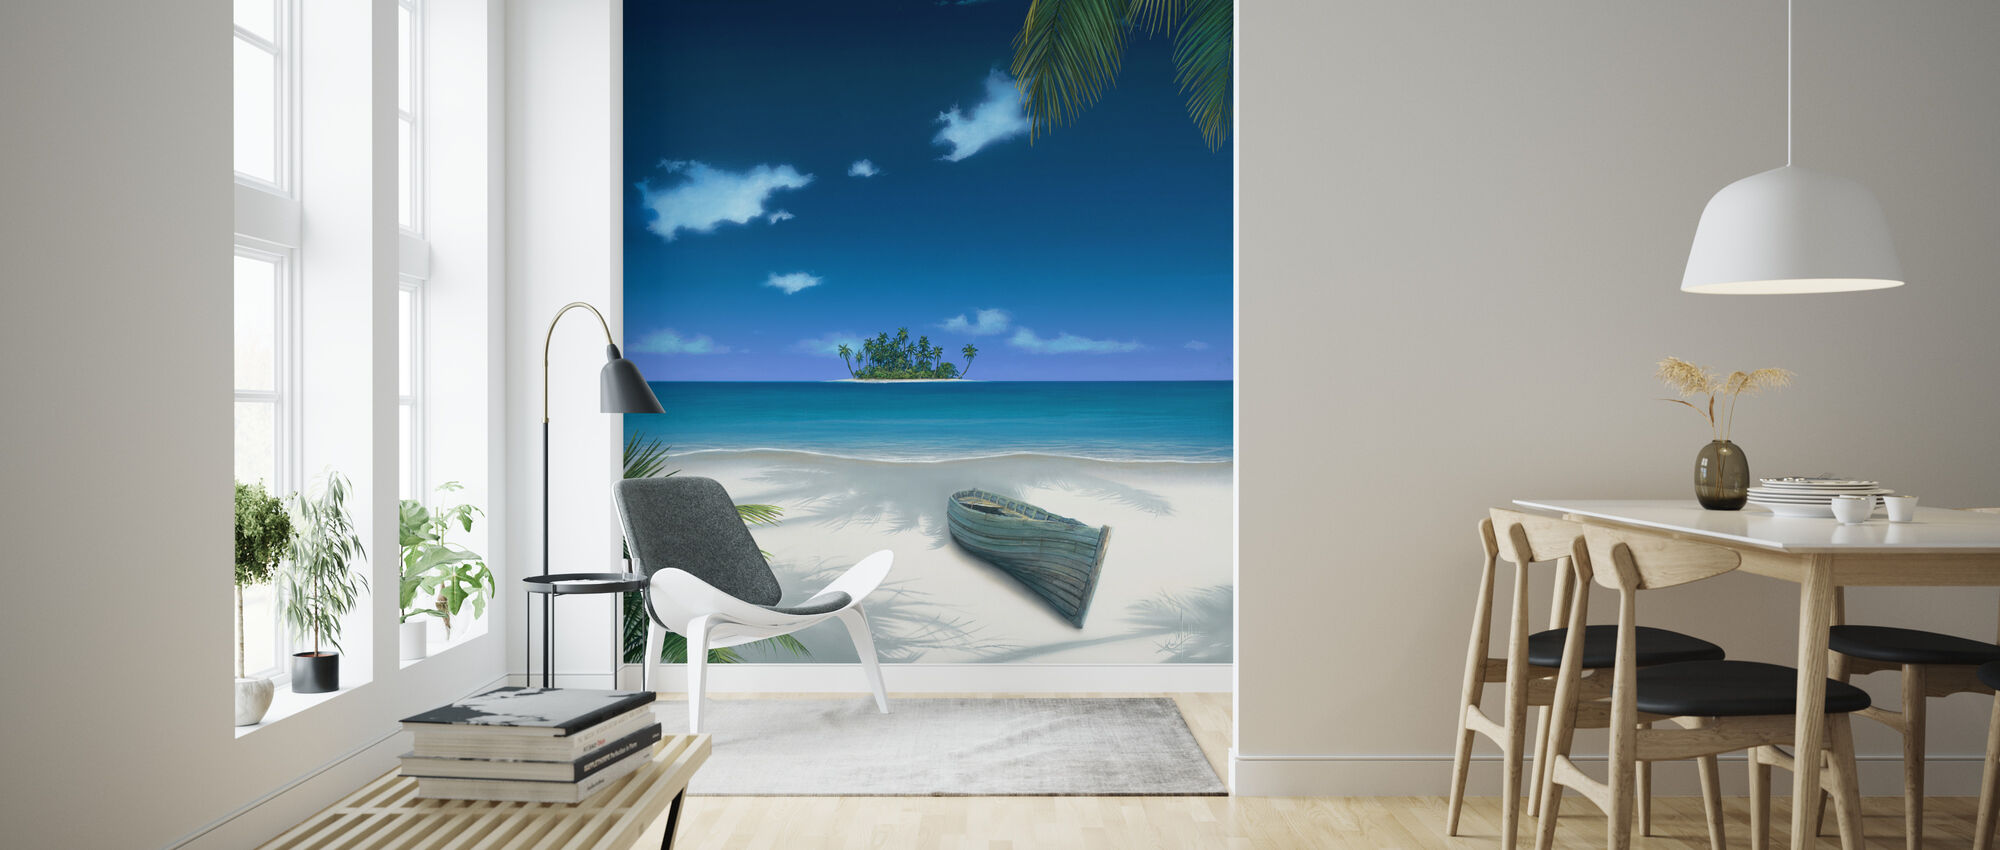 Beached - Wallpaper - Living Room